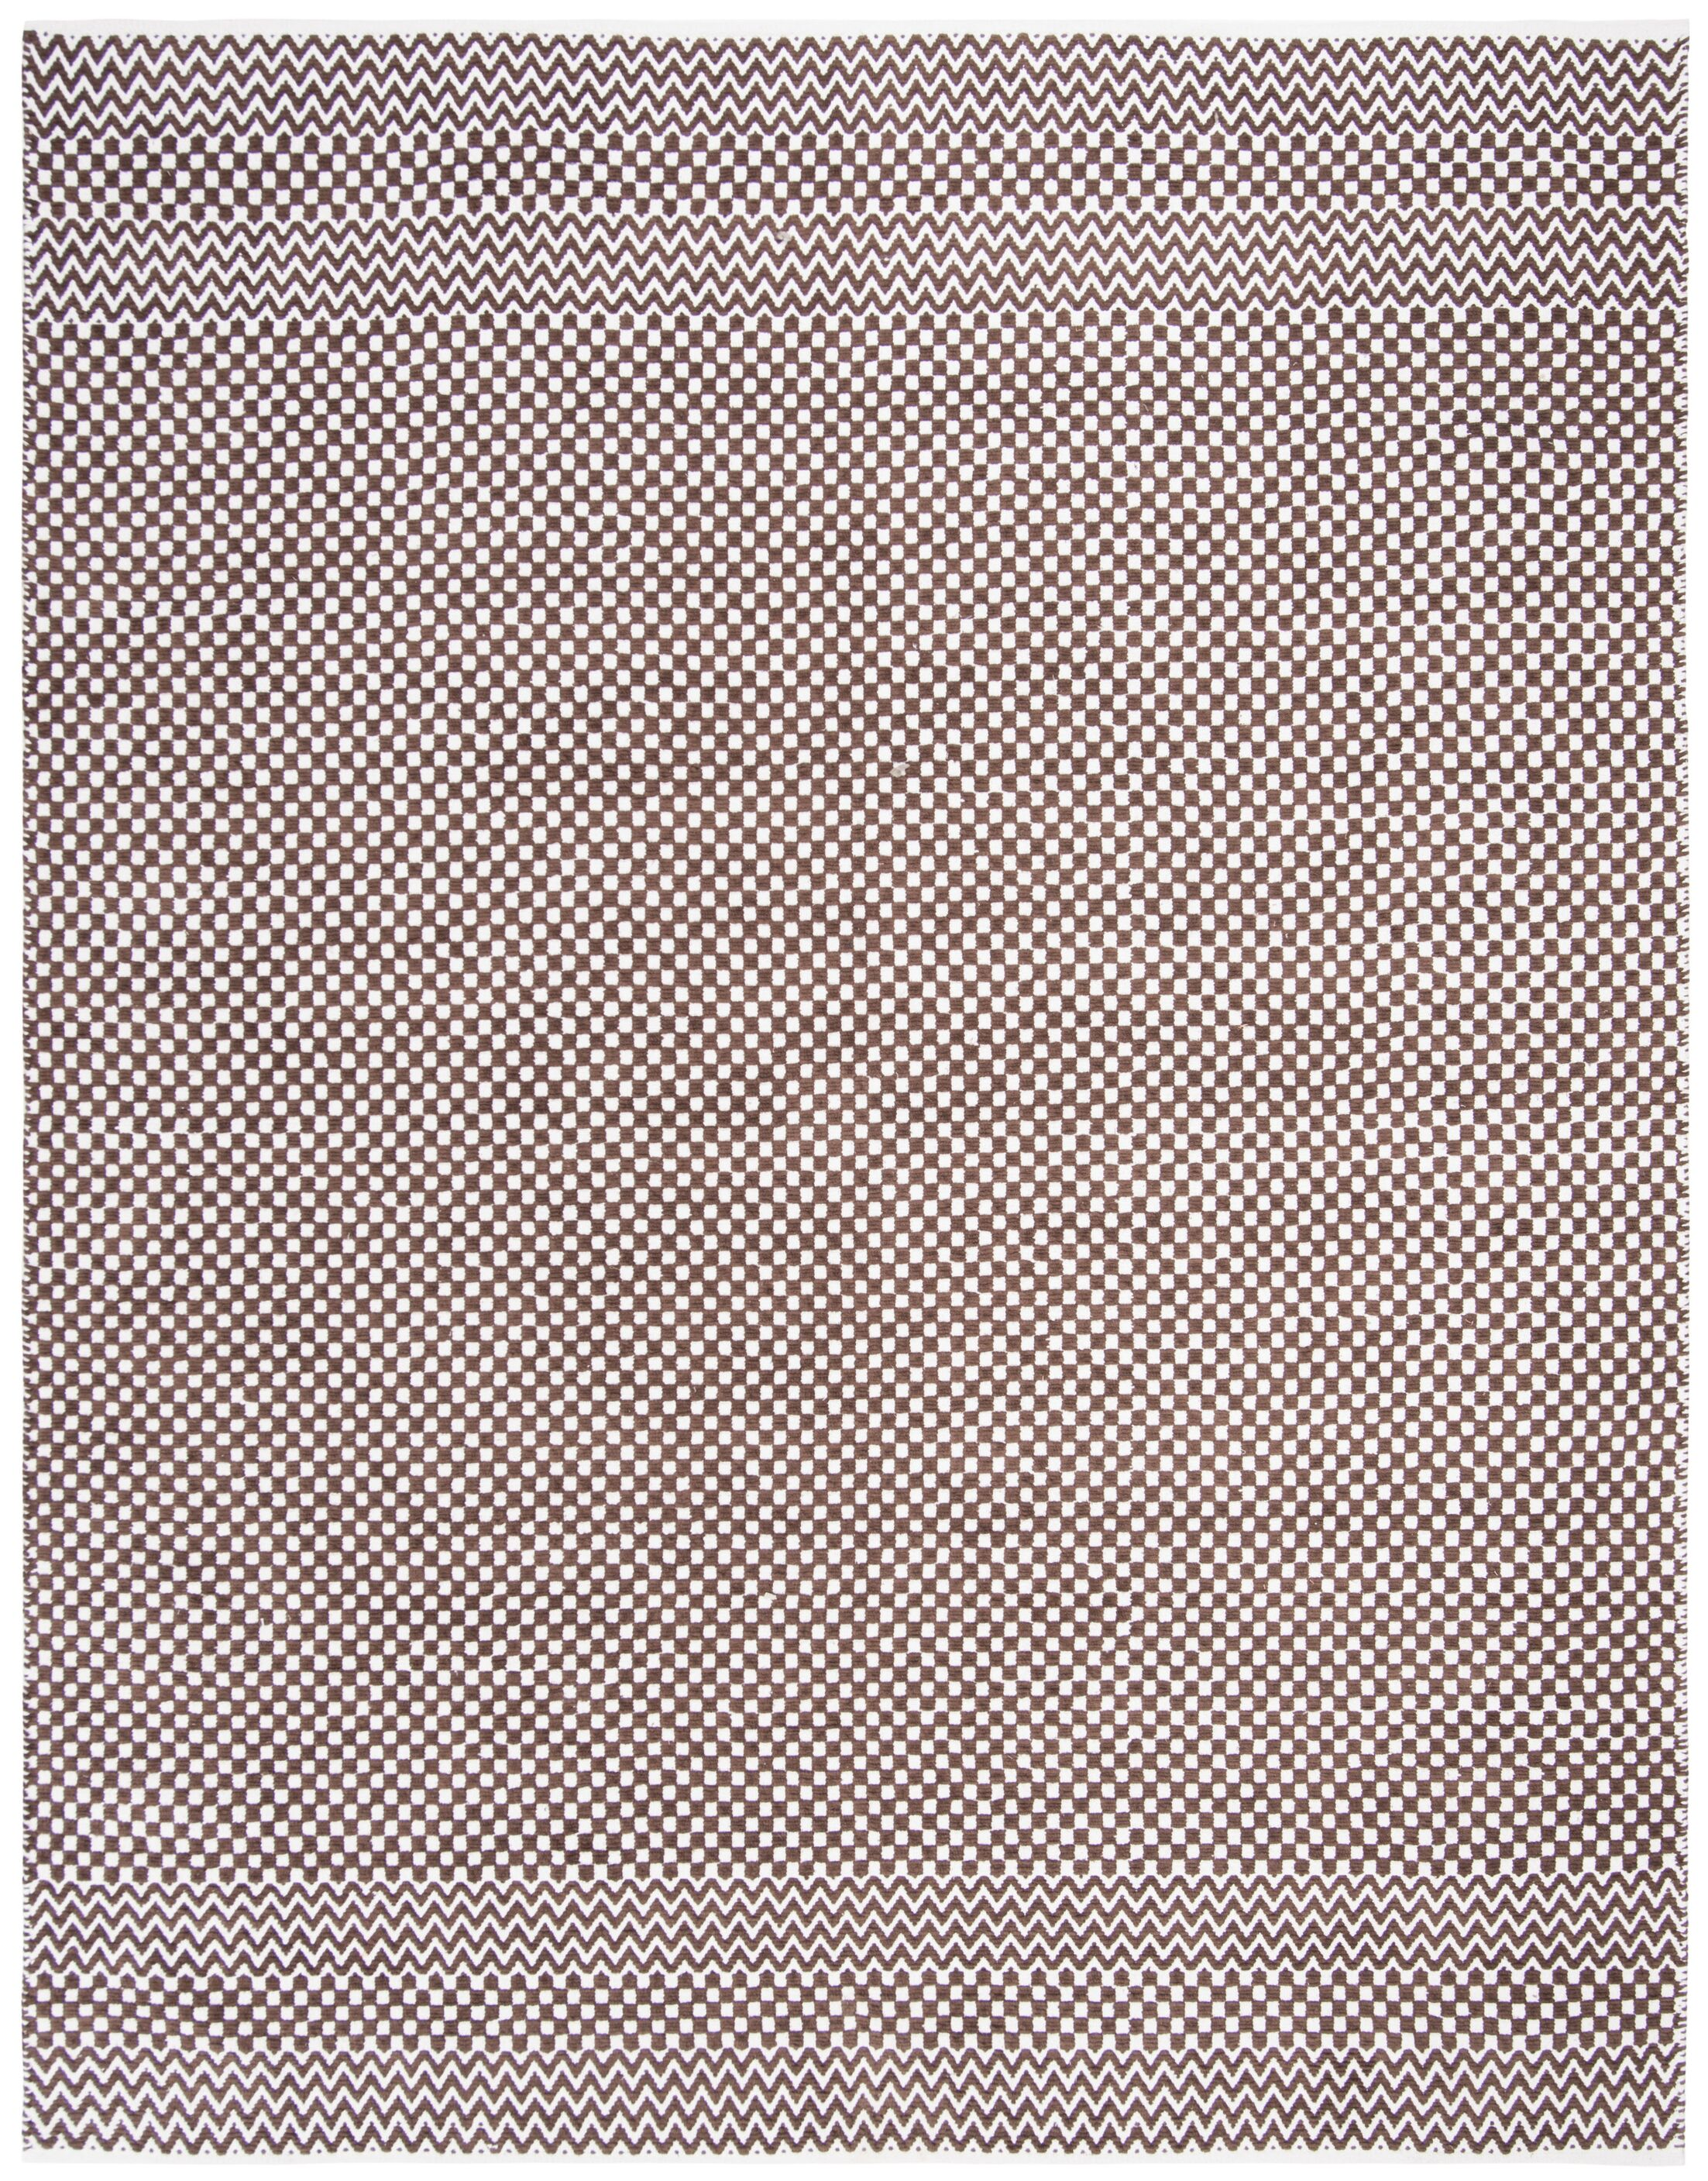 Katz Hand-Tufted Cotton Brown Area Rug Rug Size: Rectangle 5' x 8'